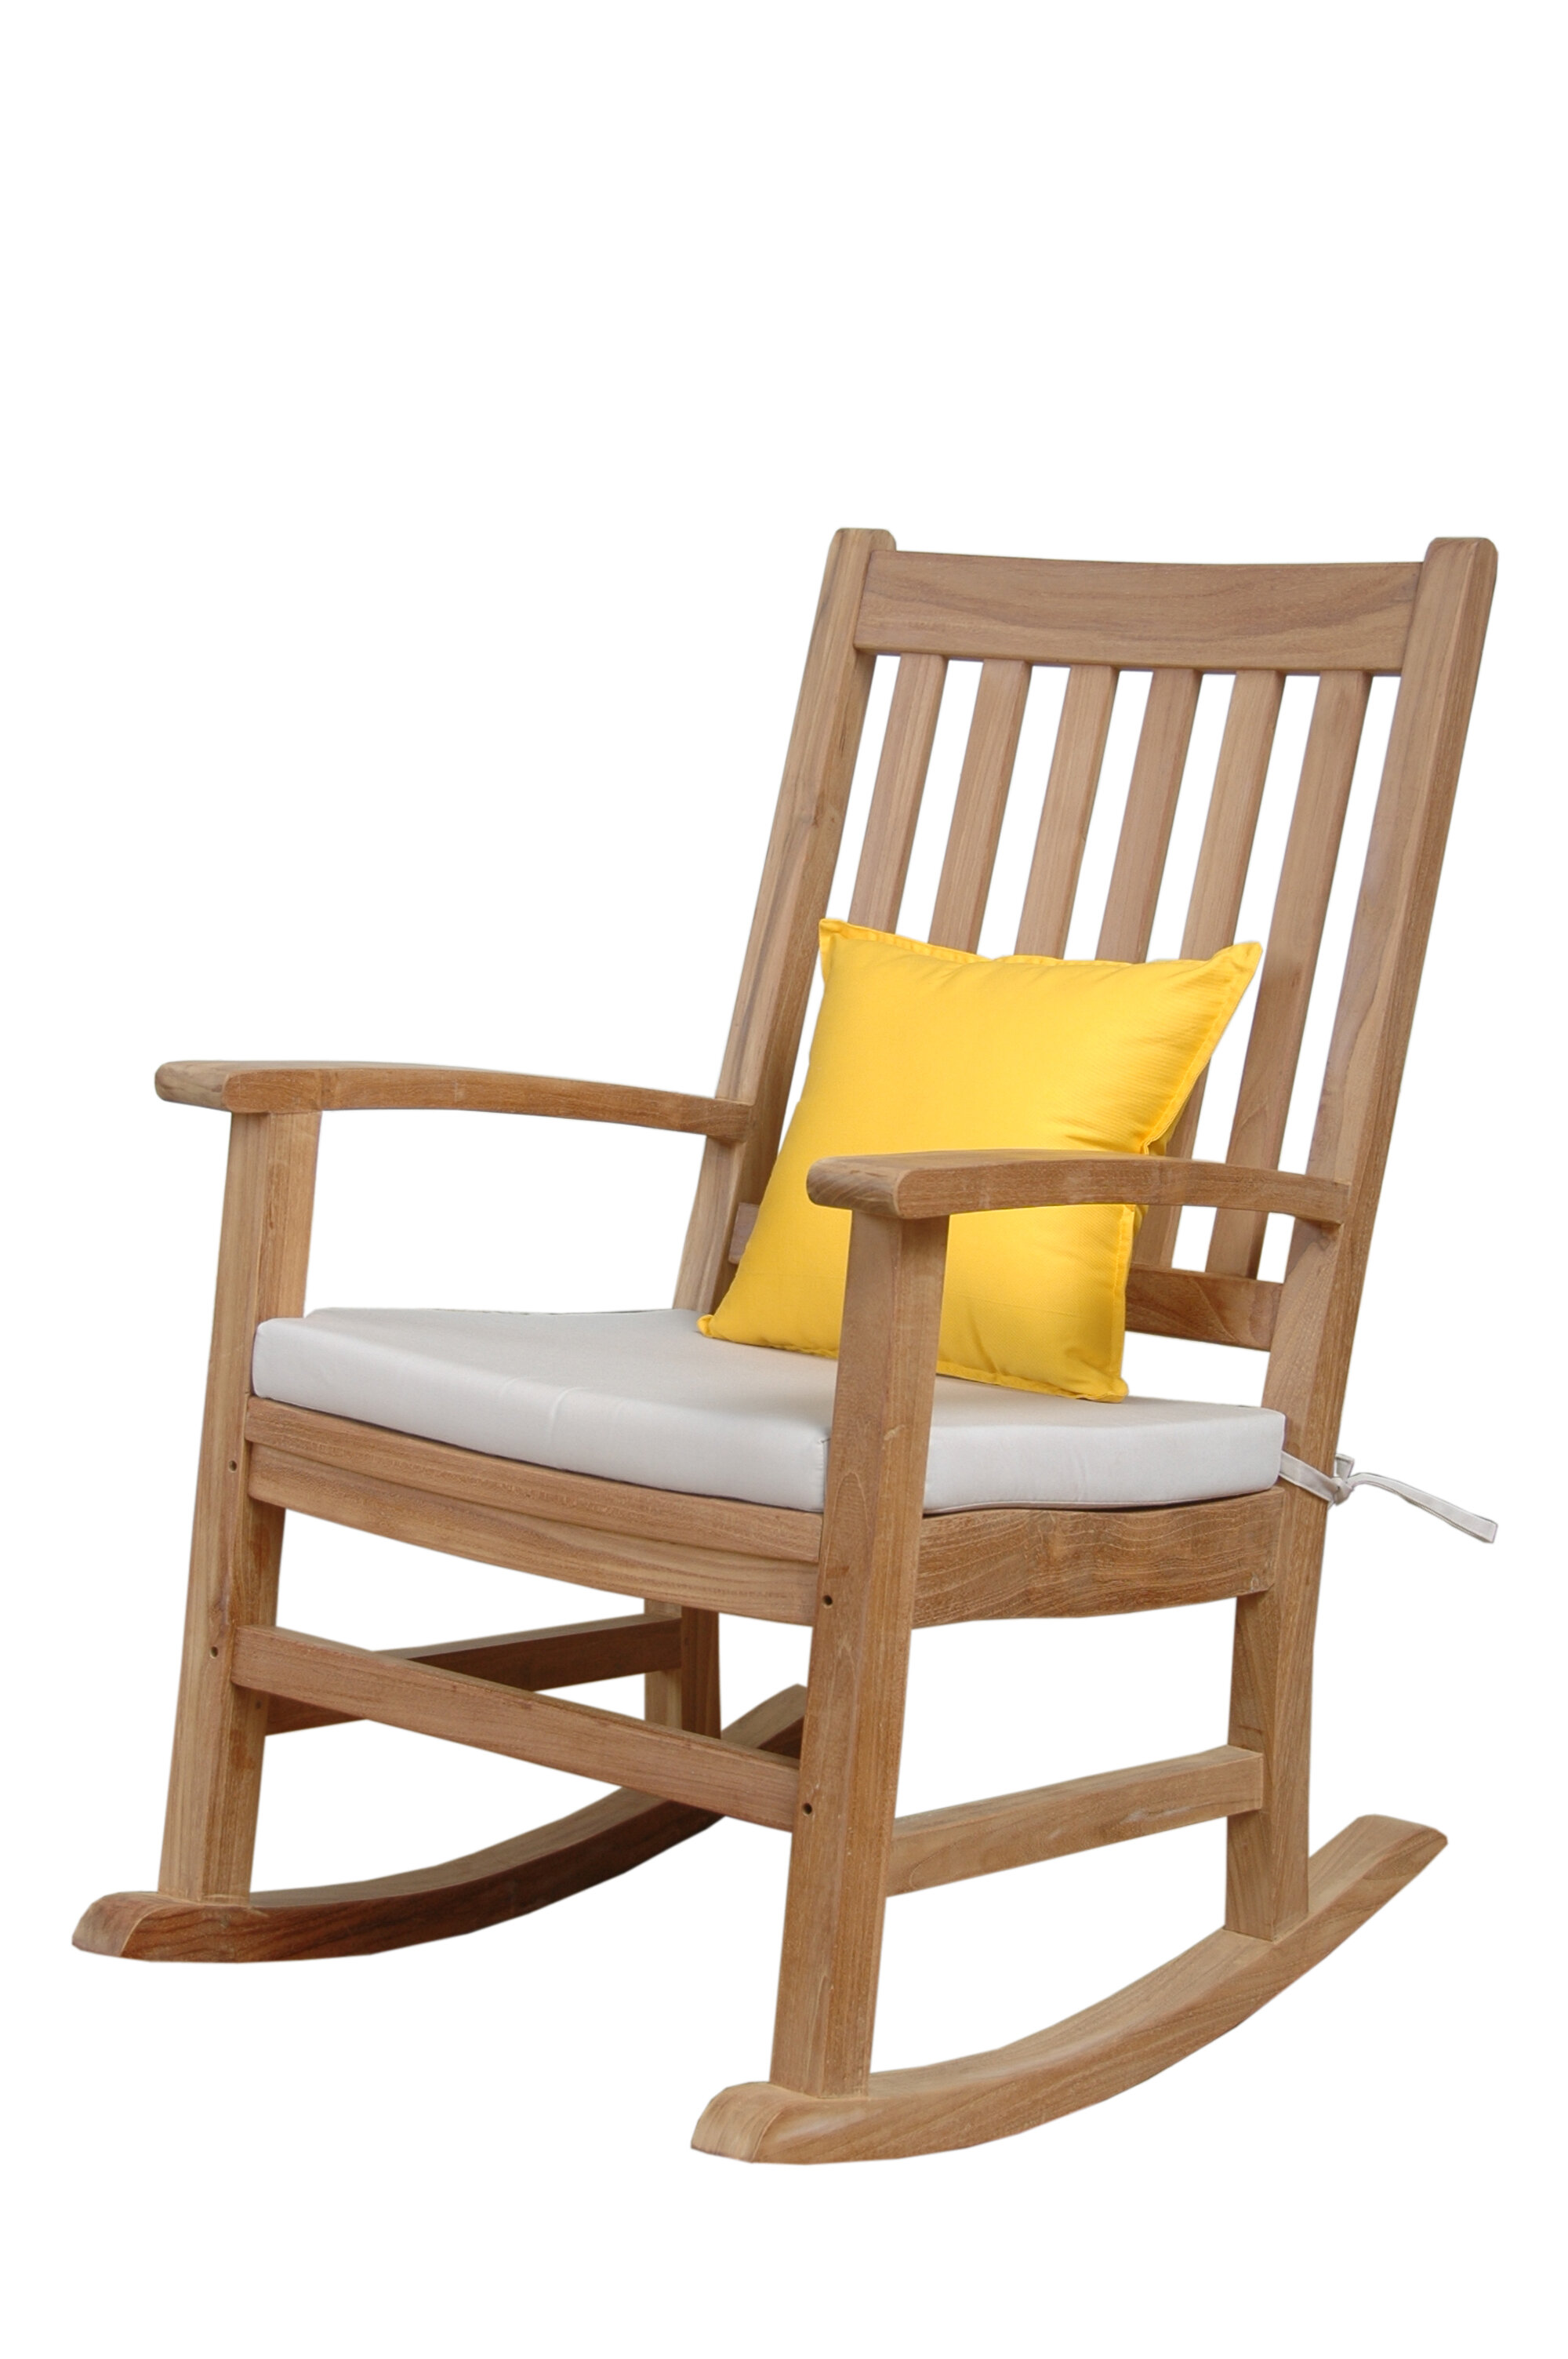 Anderson Teak Palm Beach Teak Rocking Chair | Wayfair